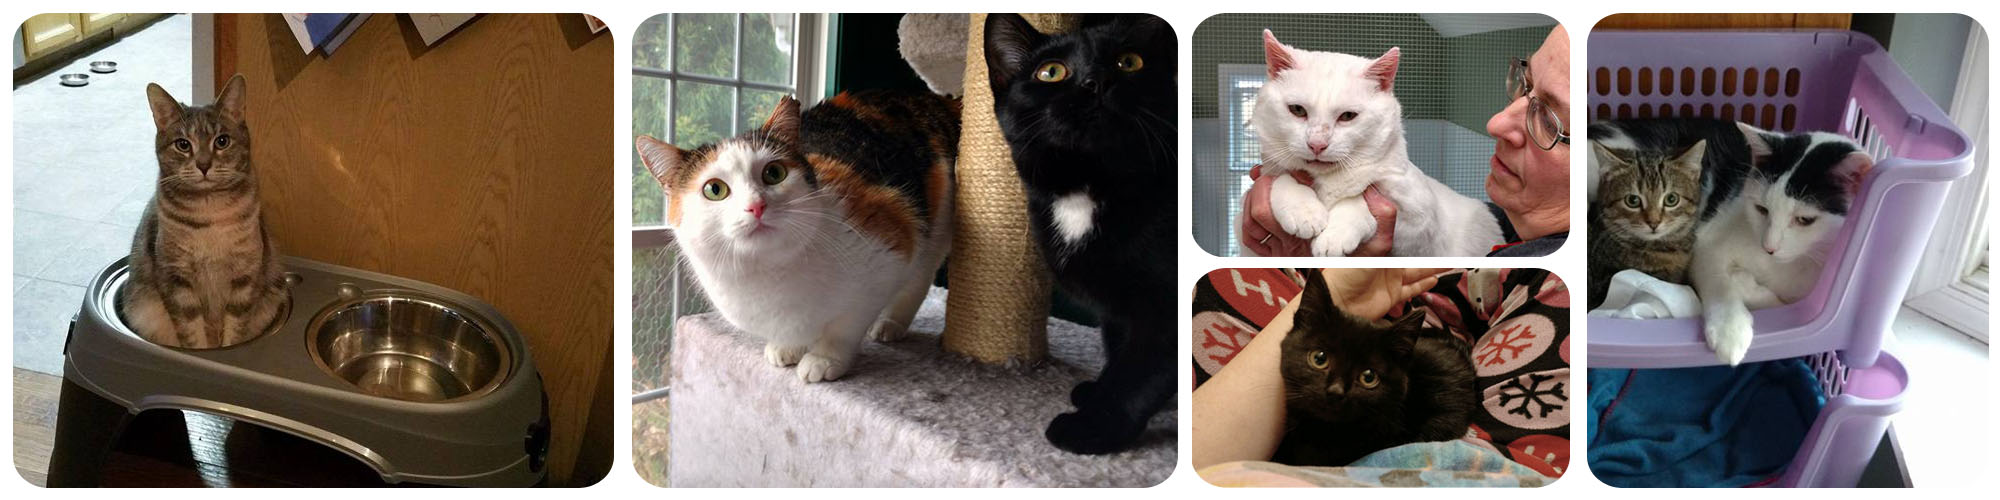 Fund Veterinary Services, No-Kill Cat Shelter | Stevensville, MD on squirrel home, chipmunk home, fast cat home, ferret home, mountain lion home, lizard home, duck home, pet cat home, dog cat home, stray cat home, cat lady home, pig cat home,